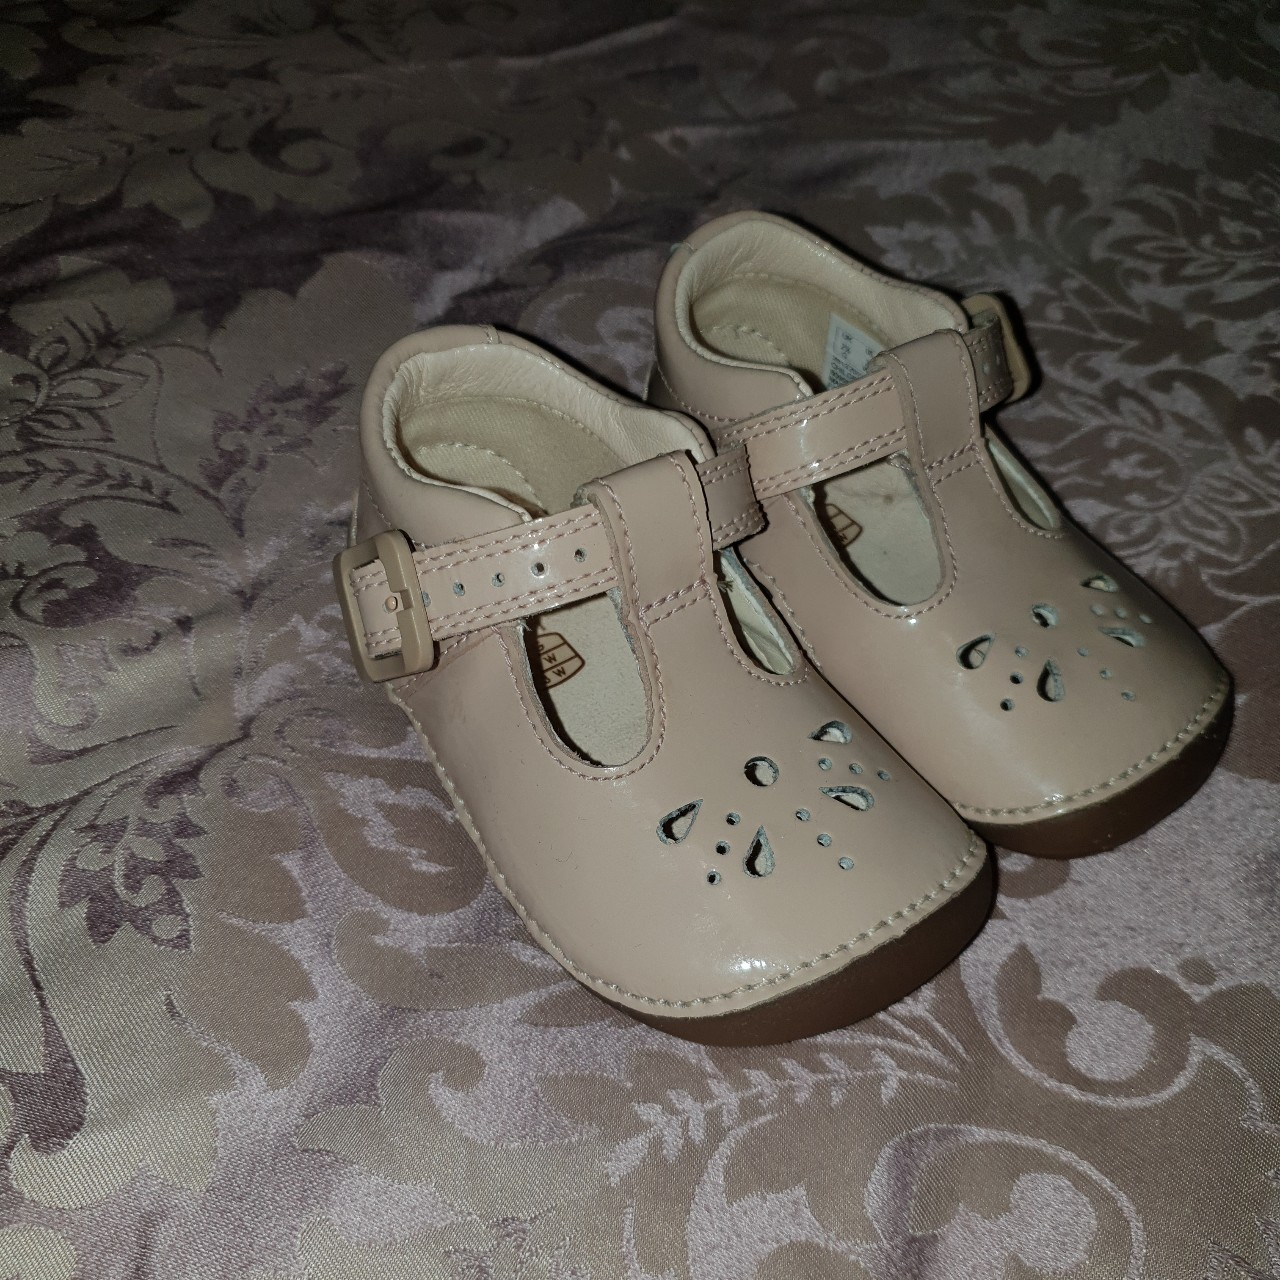 Clark baby shoes. My first steps, Pre